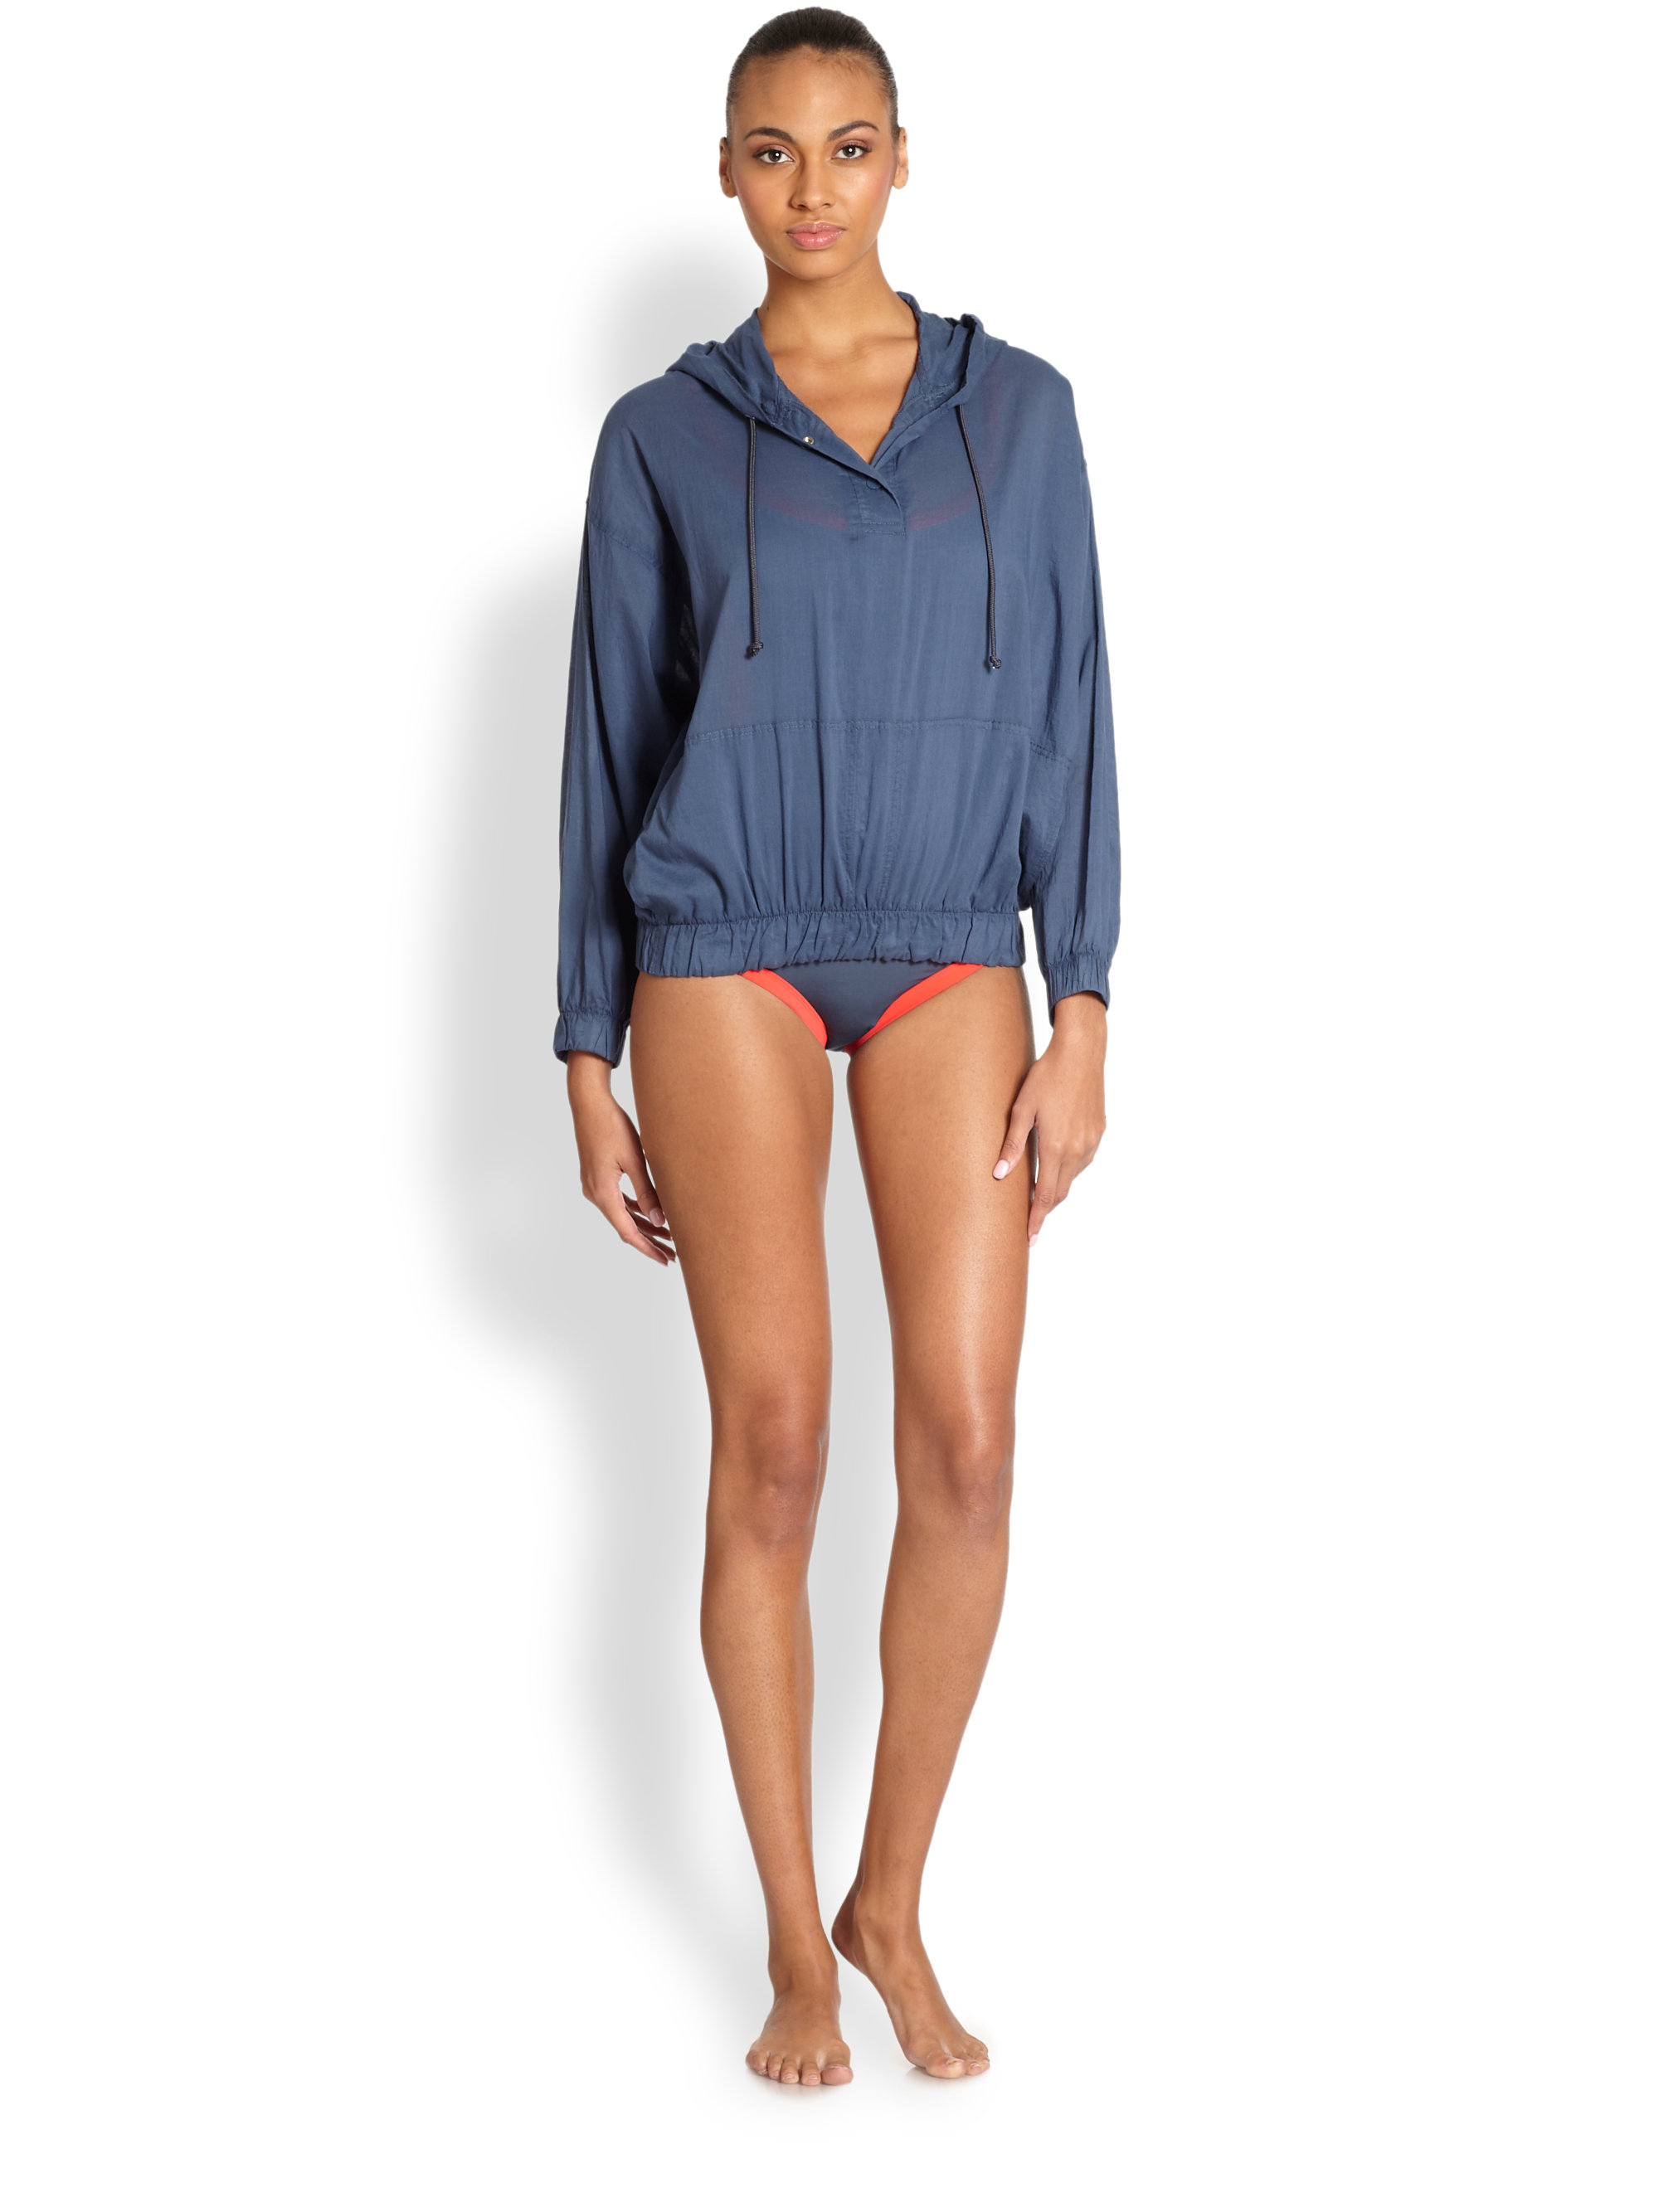 marc by marc jacobs cotton voile pullover jacket in blue lyst. Black Bedroom Furniture Sets. Home Design Ideas